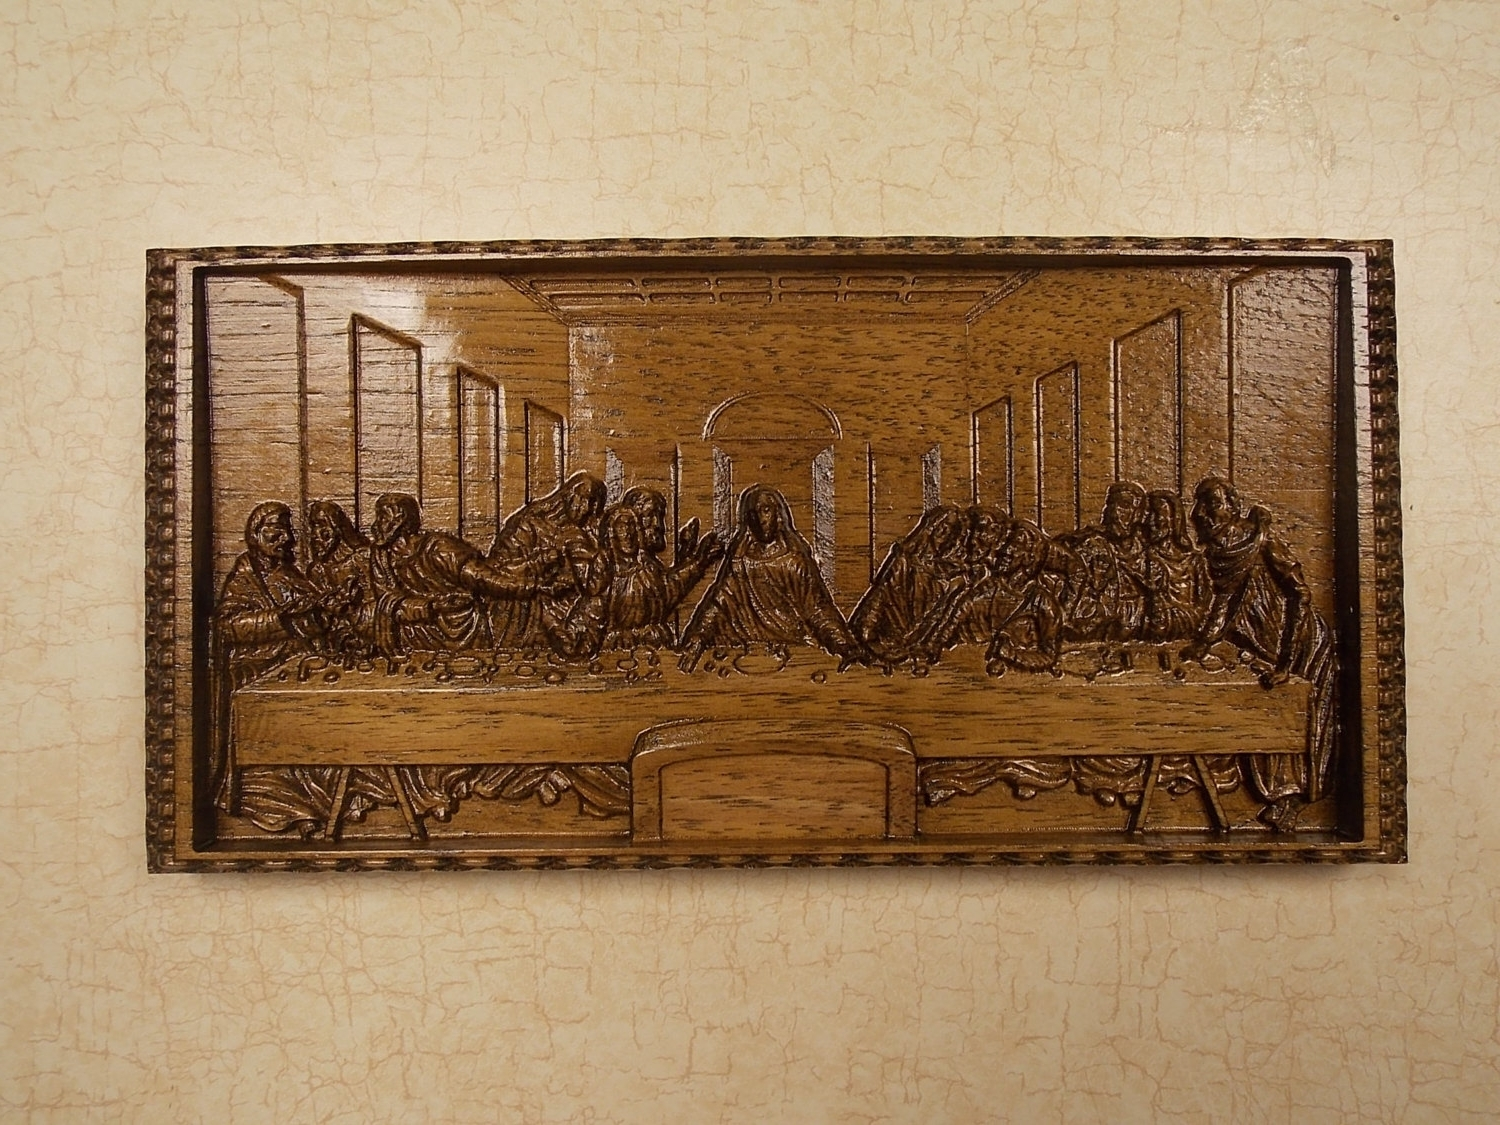 2017 Leonardo Da Vinci, The Last Supper Wall Decor, Cnc 3D Wooden Gifts Intended For Stained Wood Wall Art (View 1 of 15)